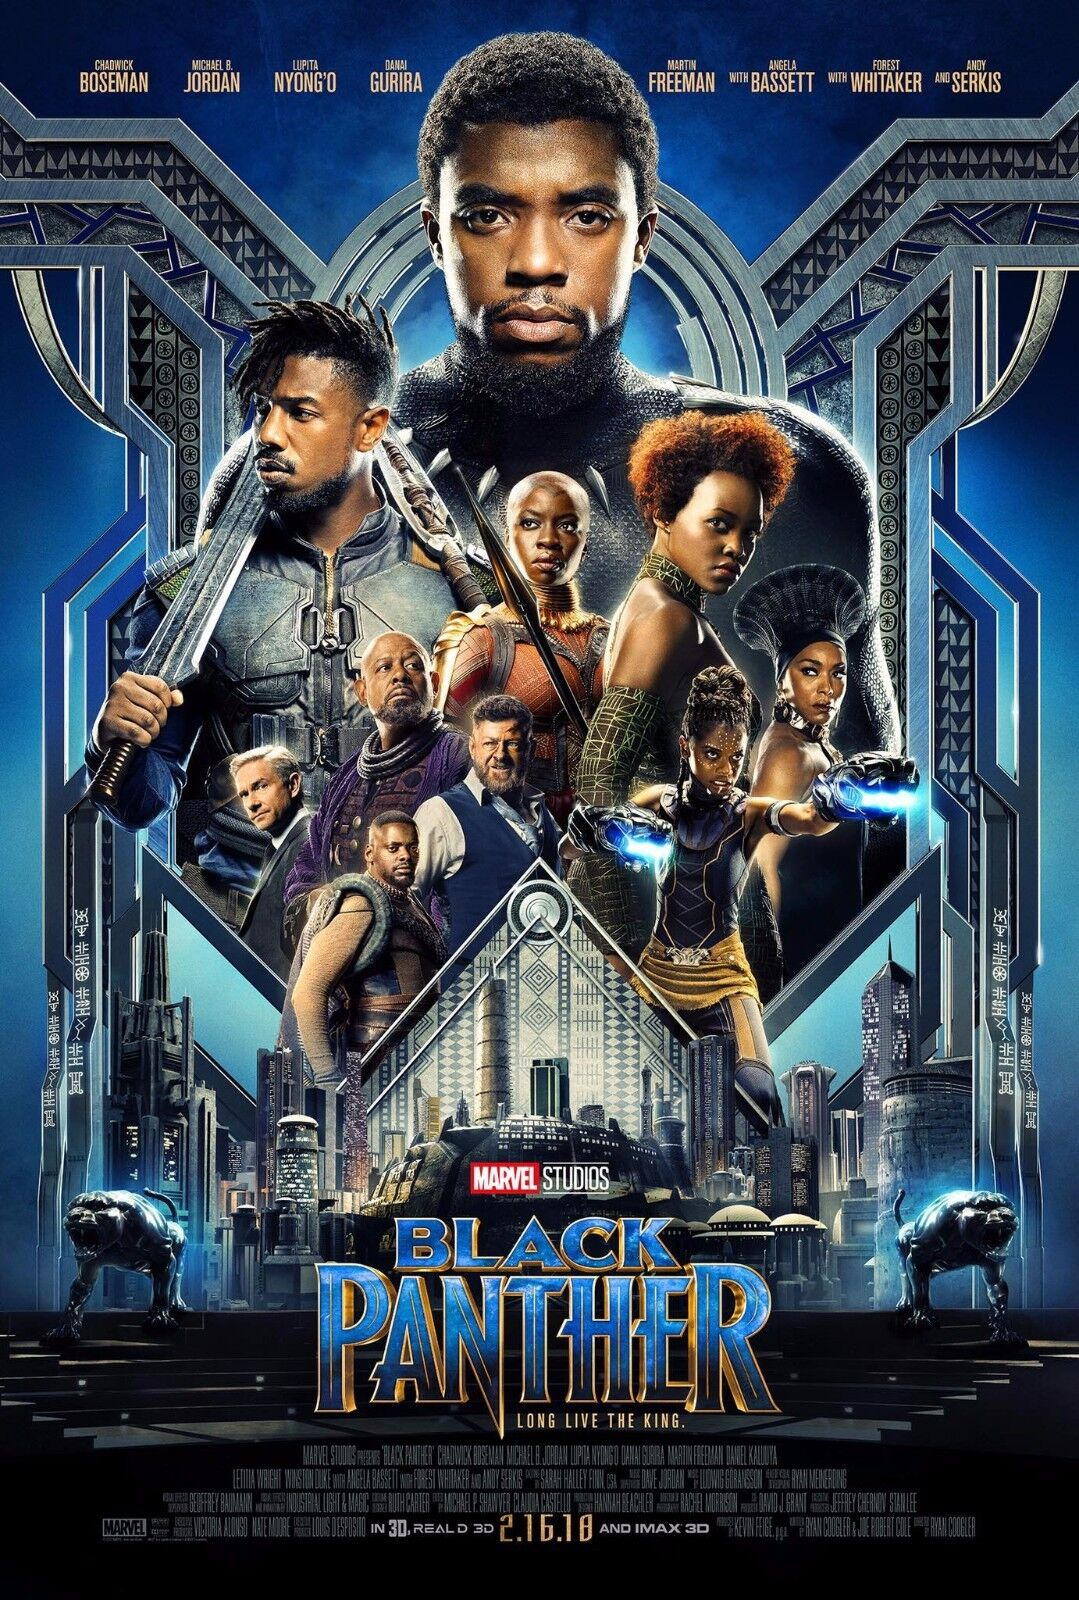 black panther movie poster 2018 13x20quot 27x40quot 32x48